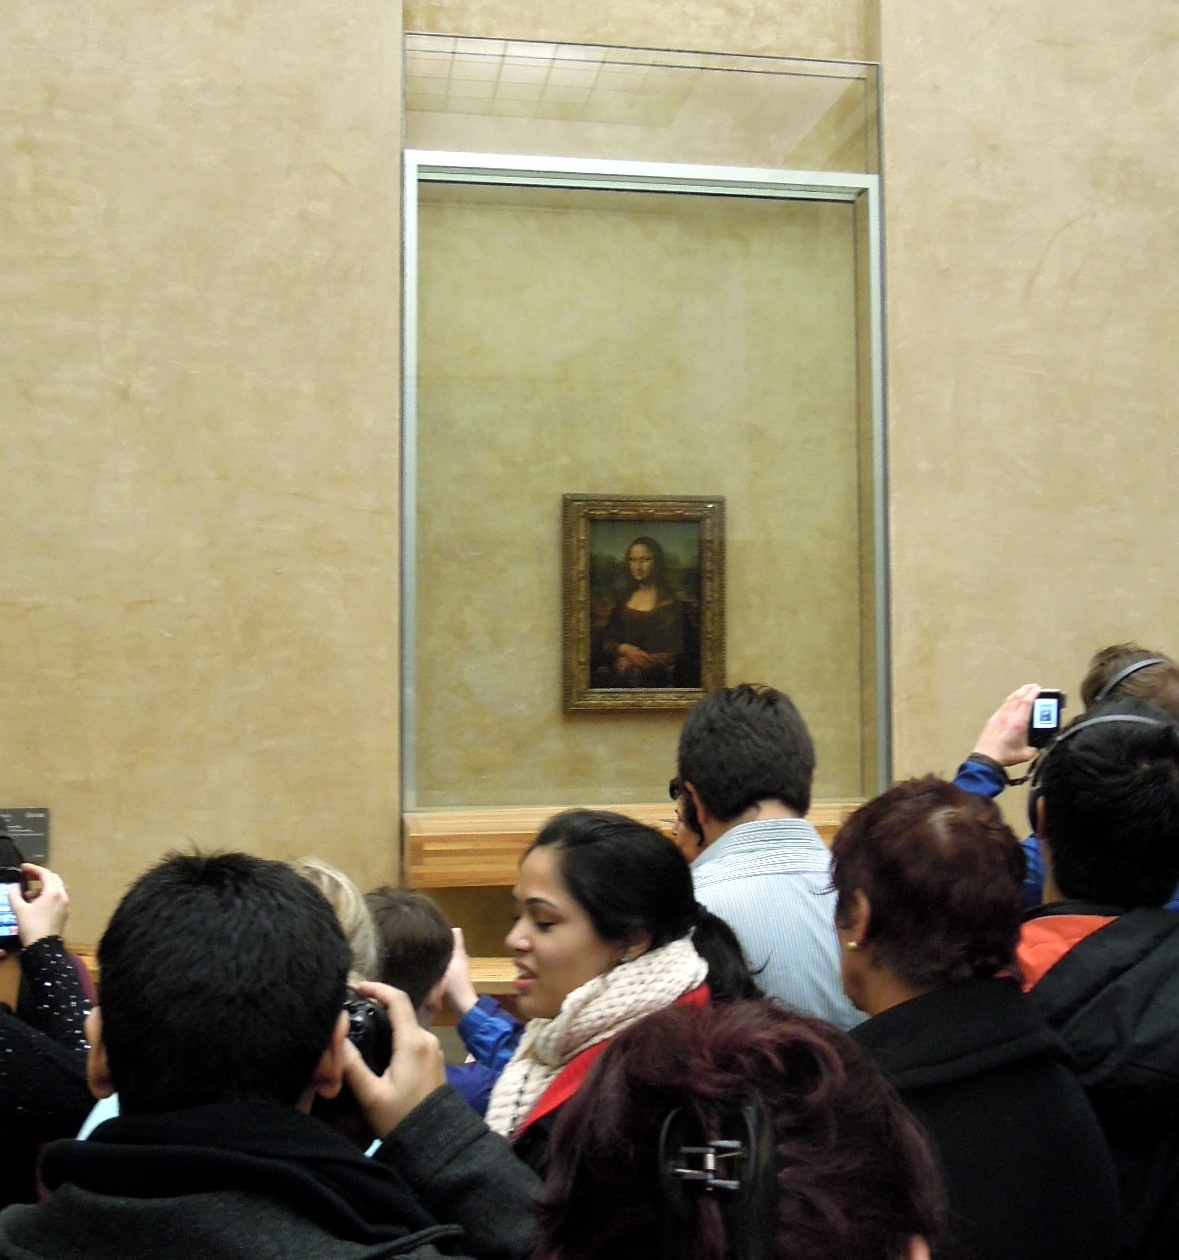 paris teasers versailles louvre dessert sketches com the mona lisa surrounded by people and cameras